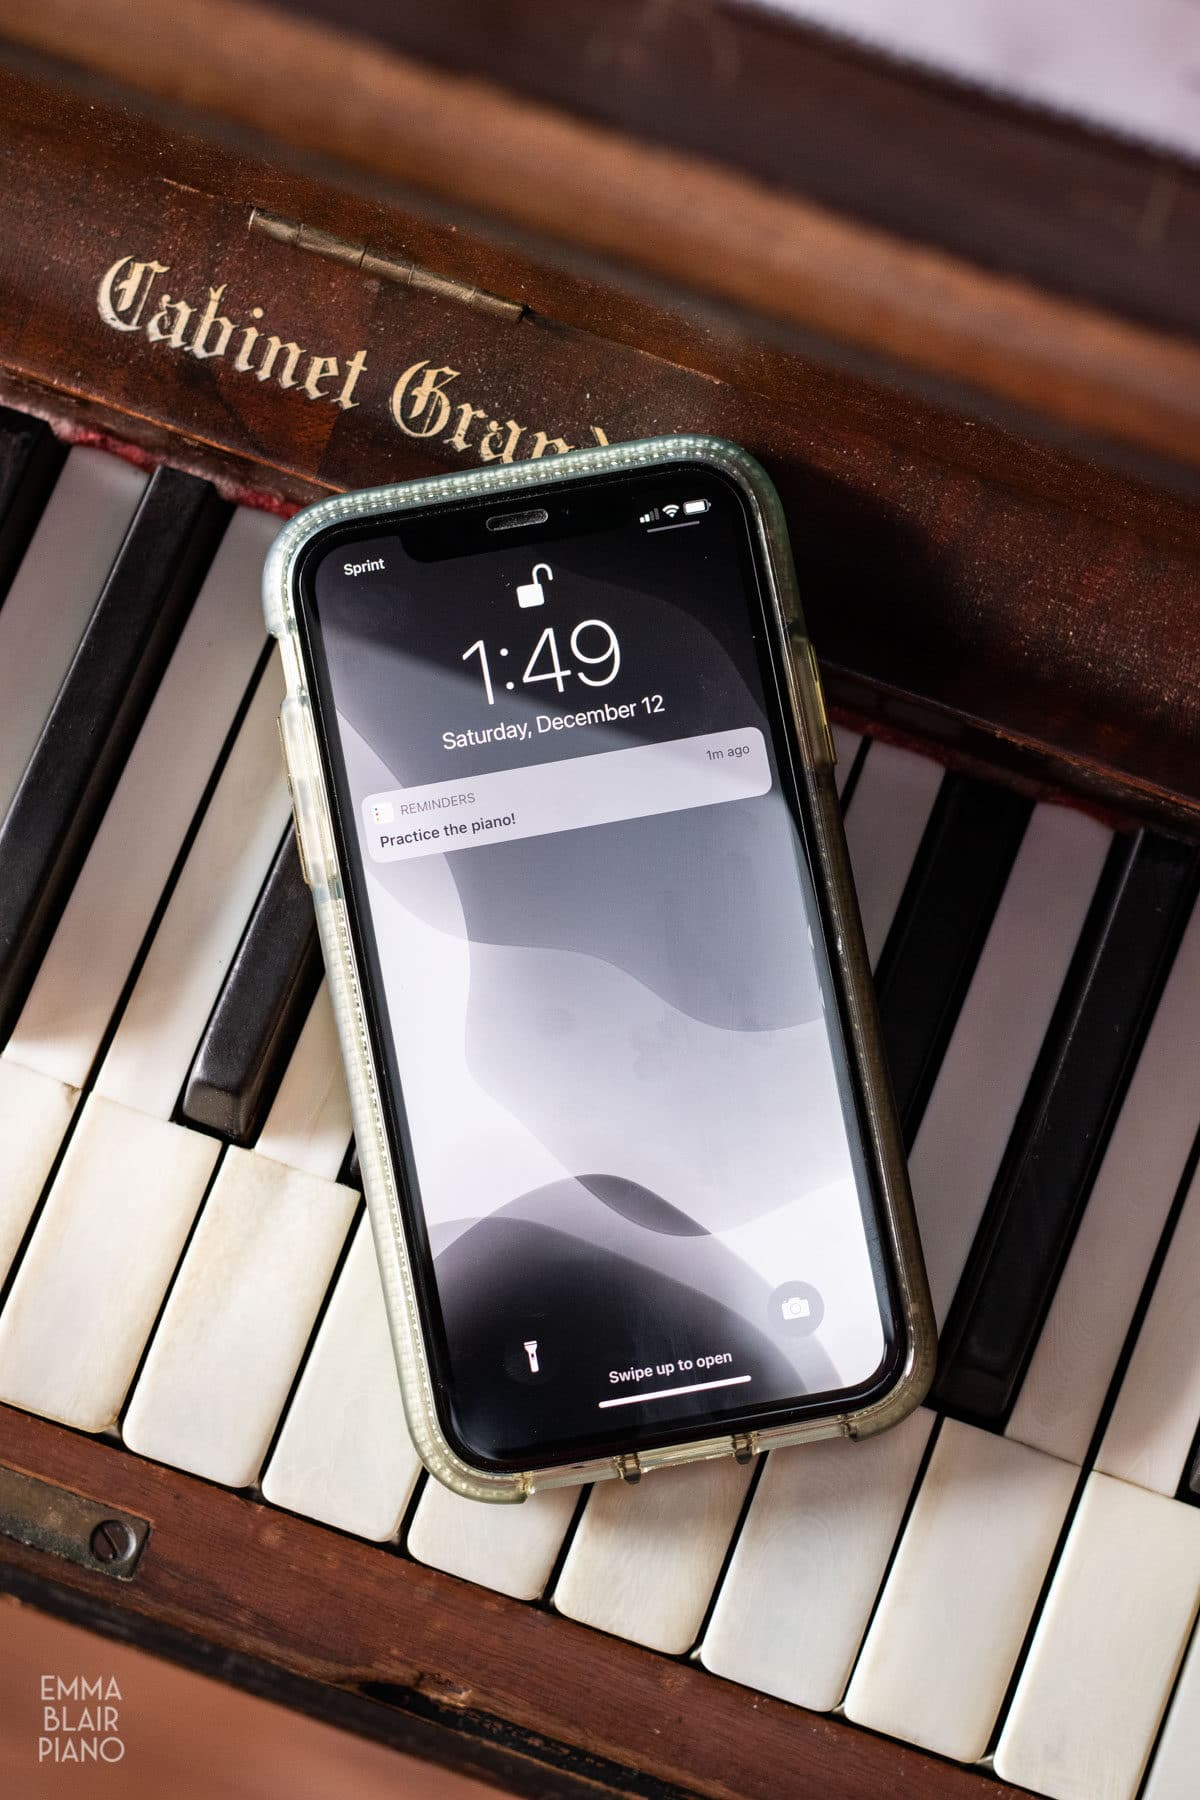 cell phone reminder to practice the piano